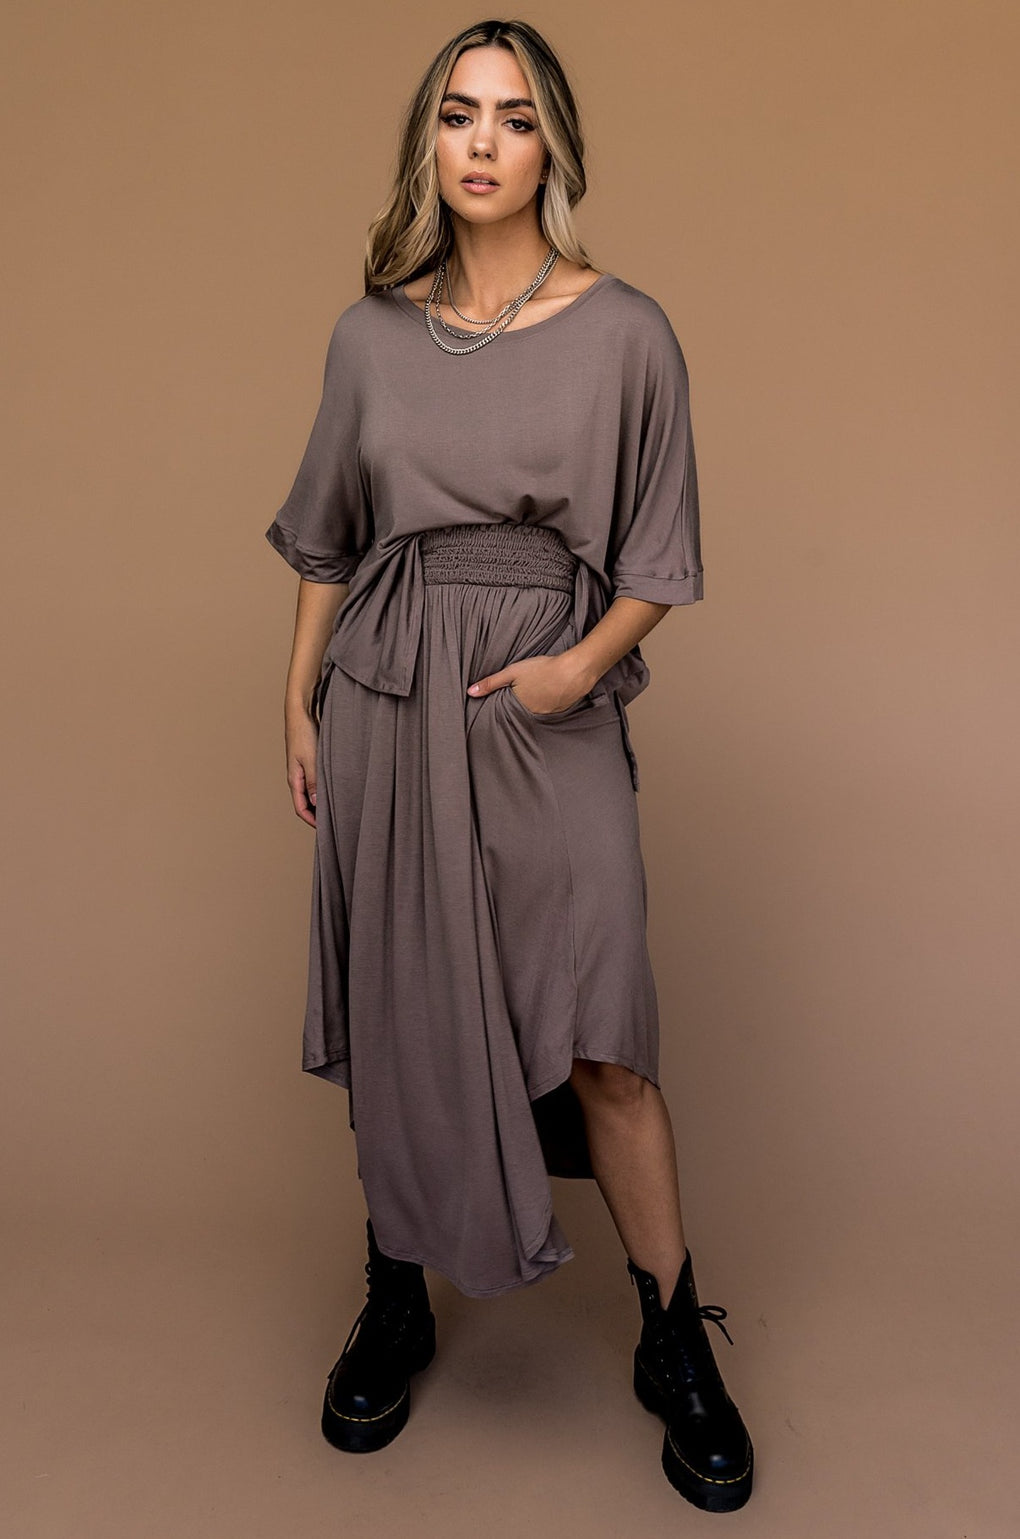 Upper West Side Top and Skirt Set in Clay